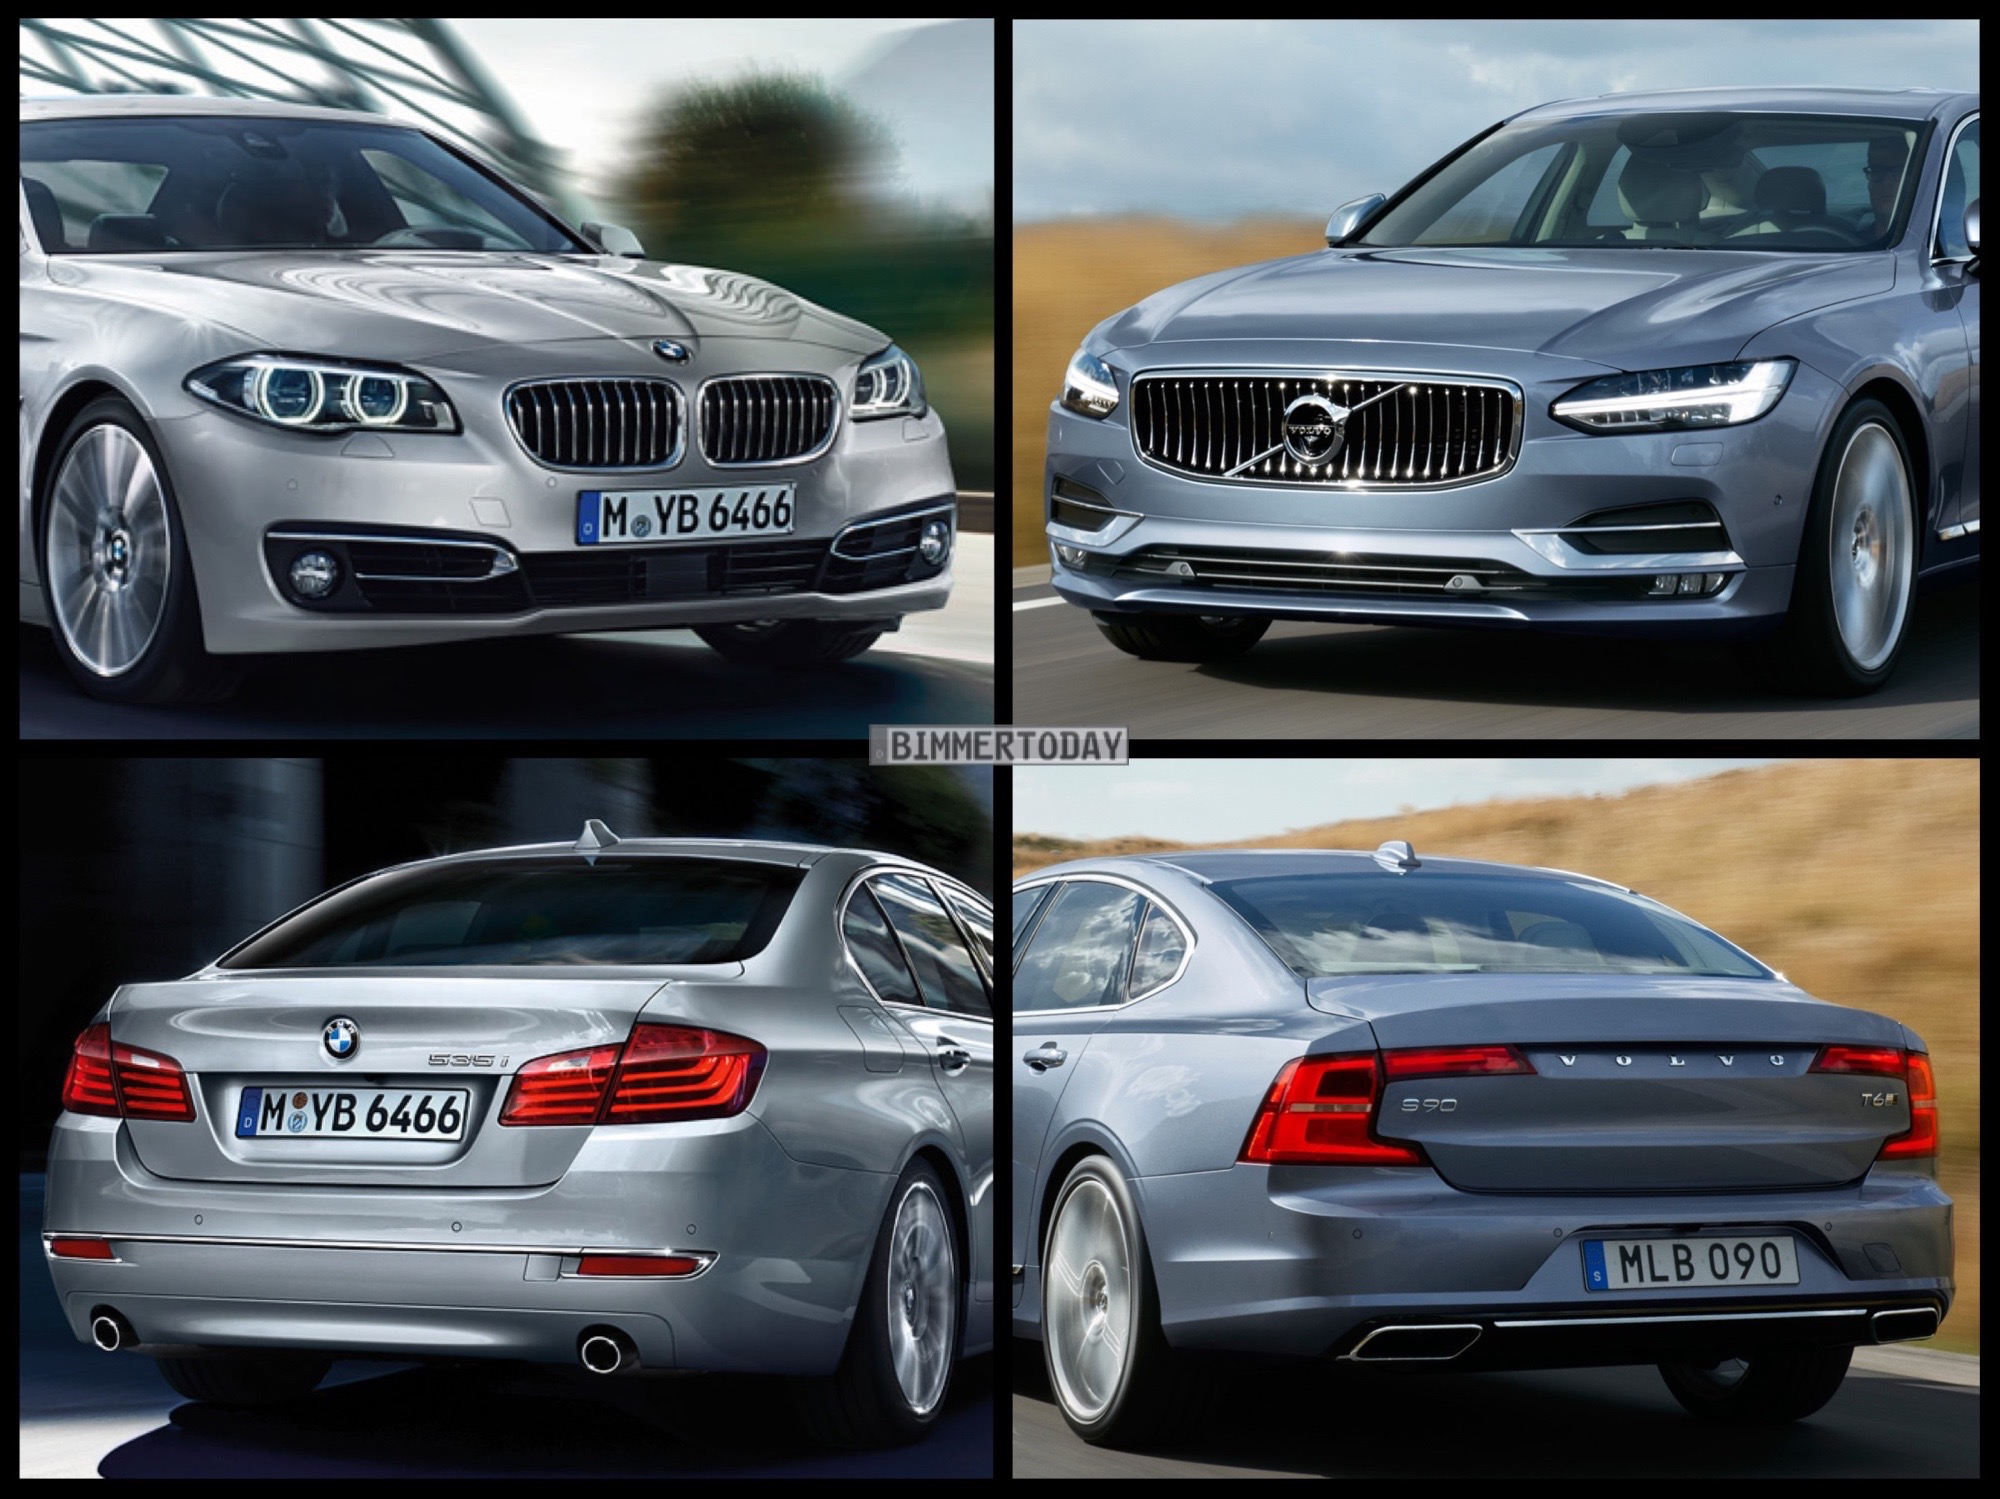 Image Comparison 2016 Volvo S90 Vs Bmw F10 5 Series